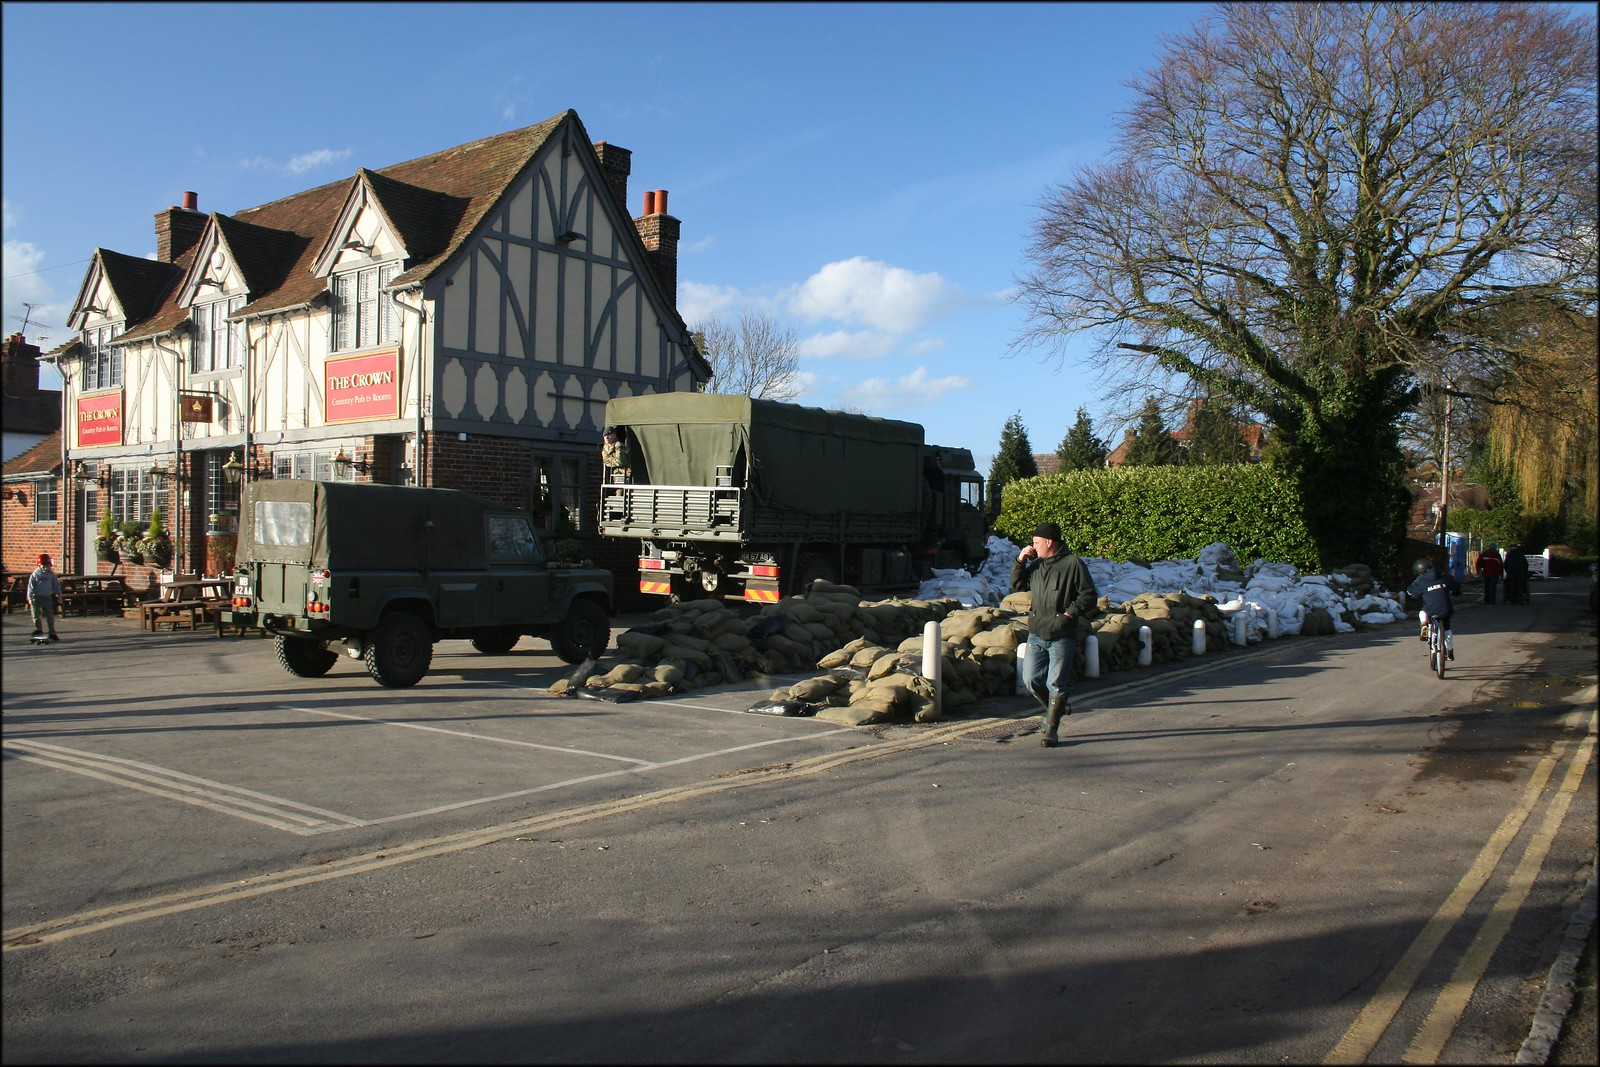 The army have taken over this pub The army have taken over this pub to distribute sandbags to help with the flooding in Cookham.